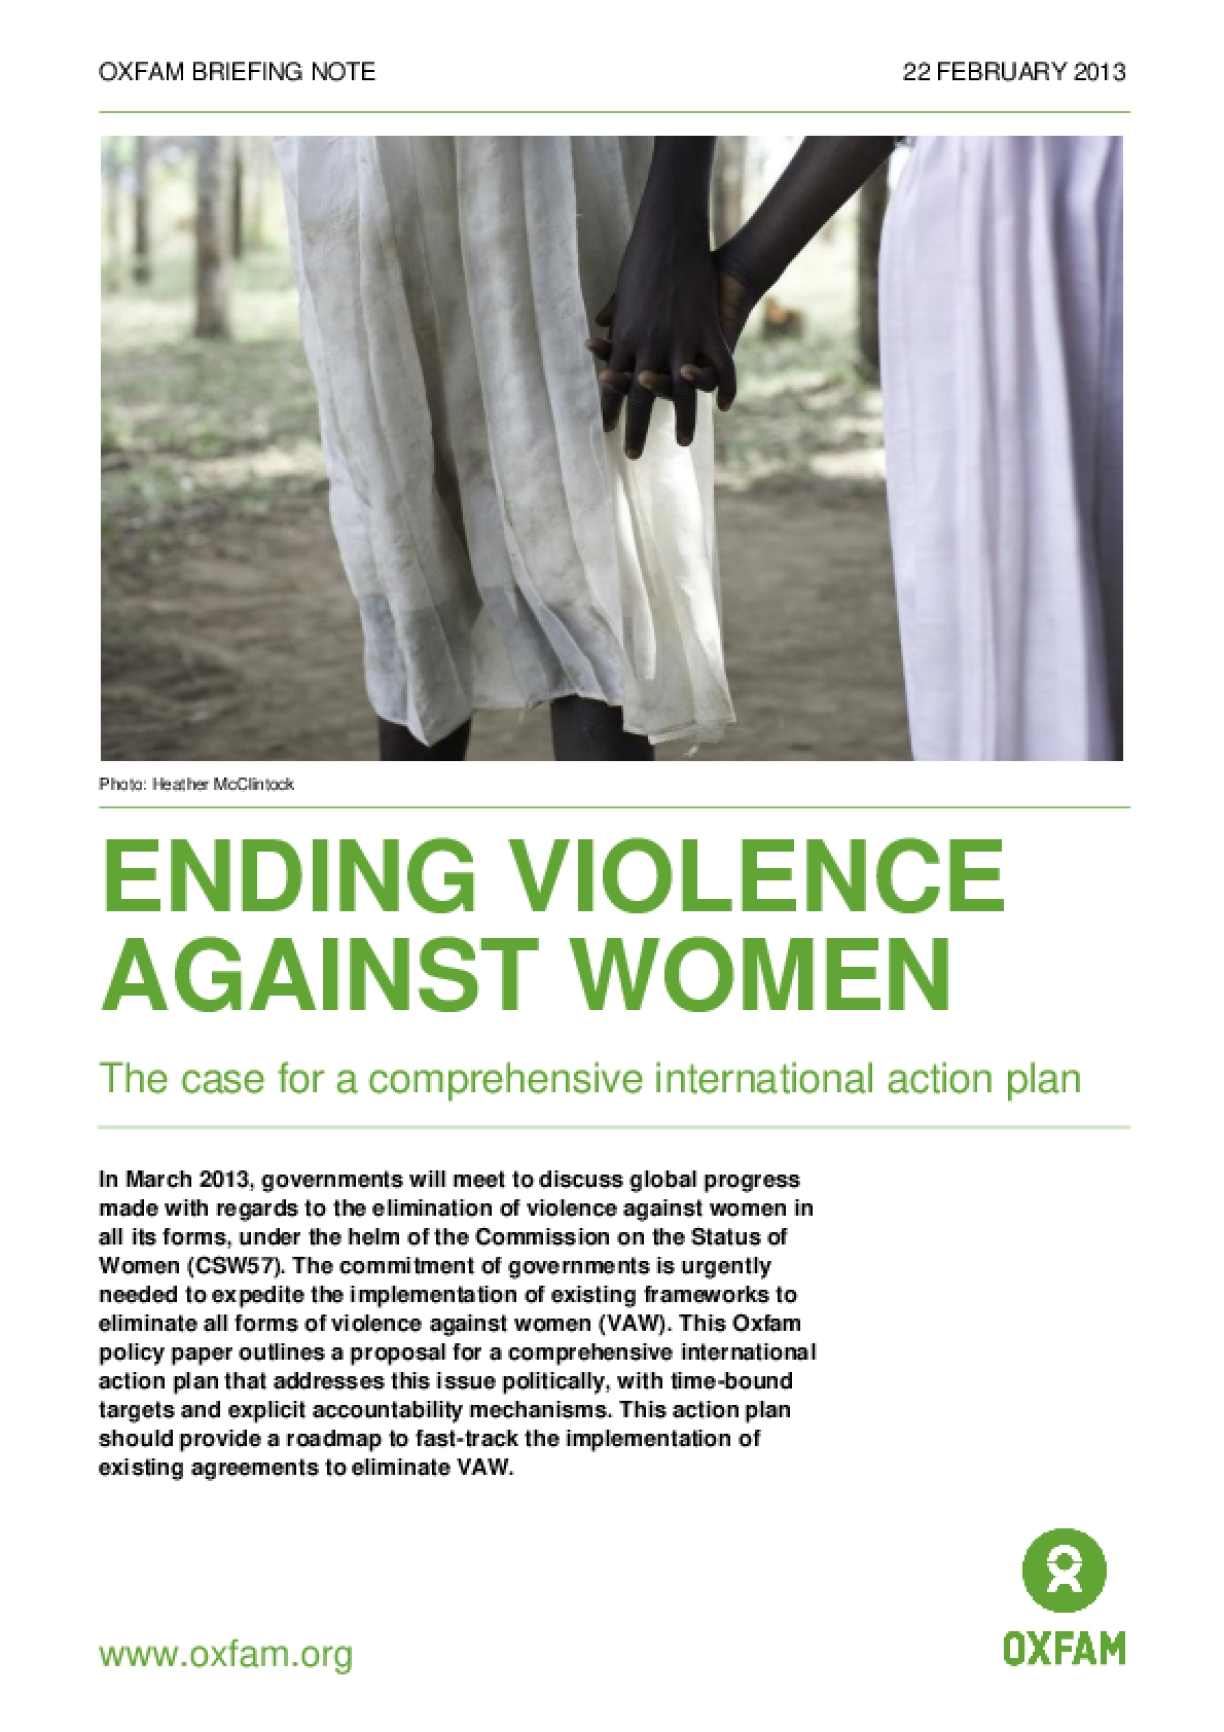 Ending Violence Against Women: The Case for a Comprehensive International Action Plan